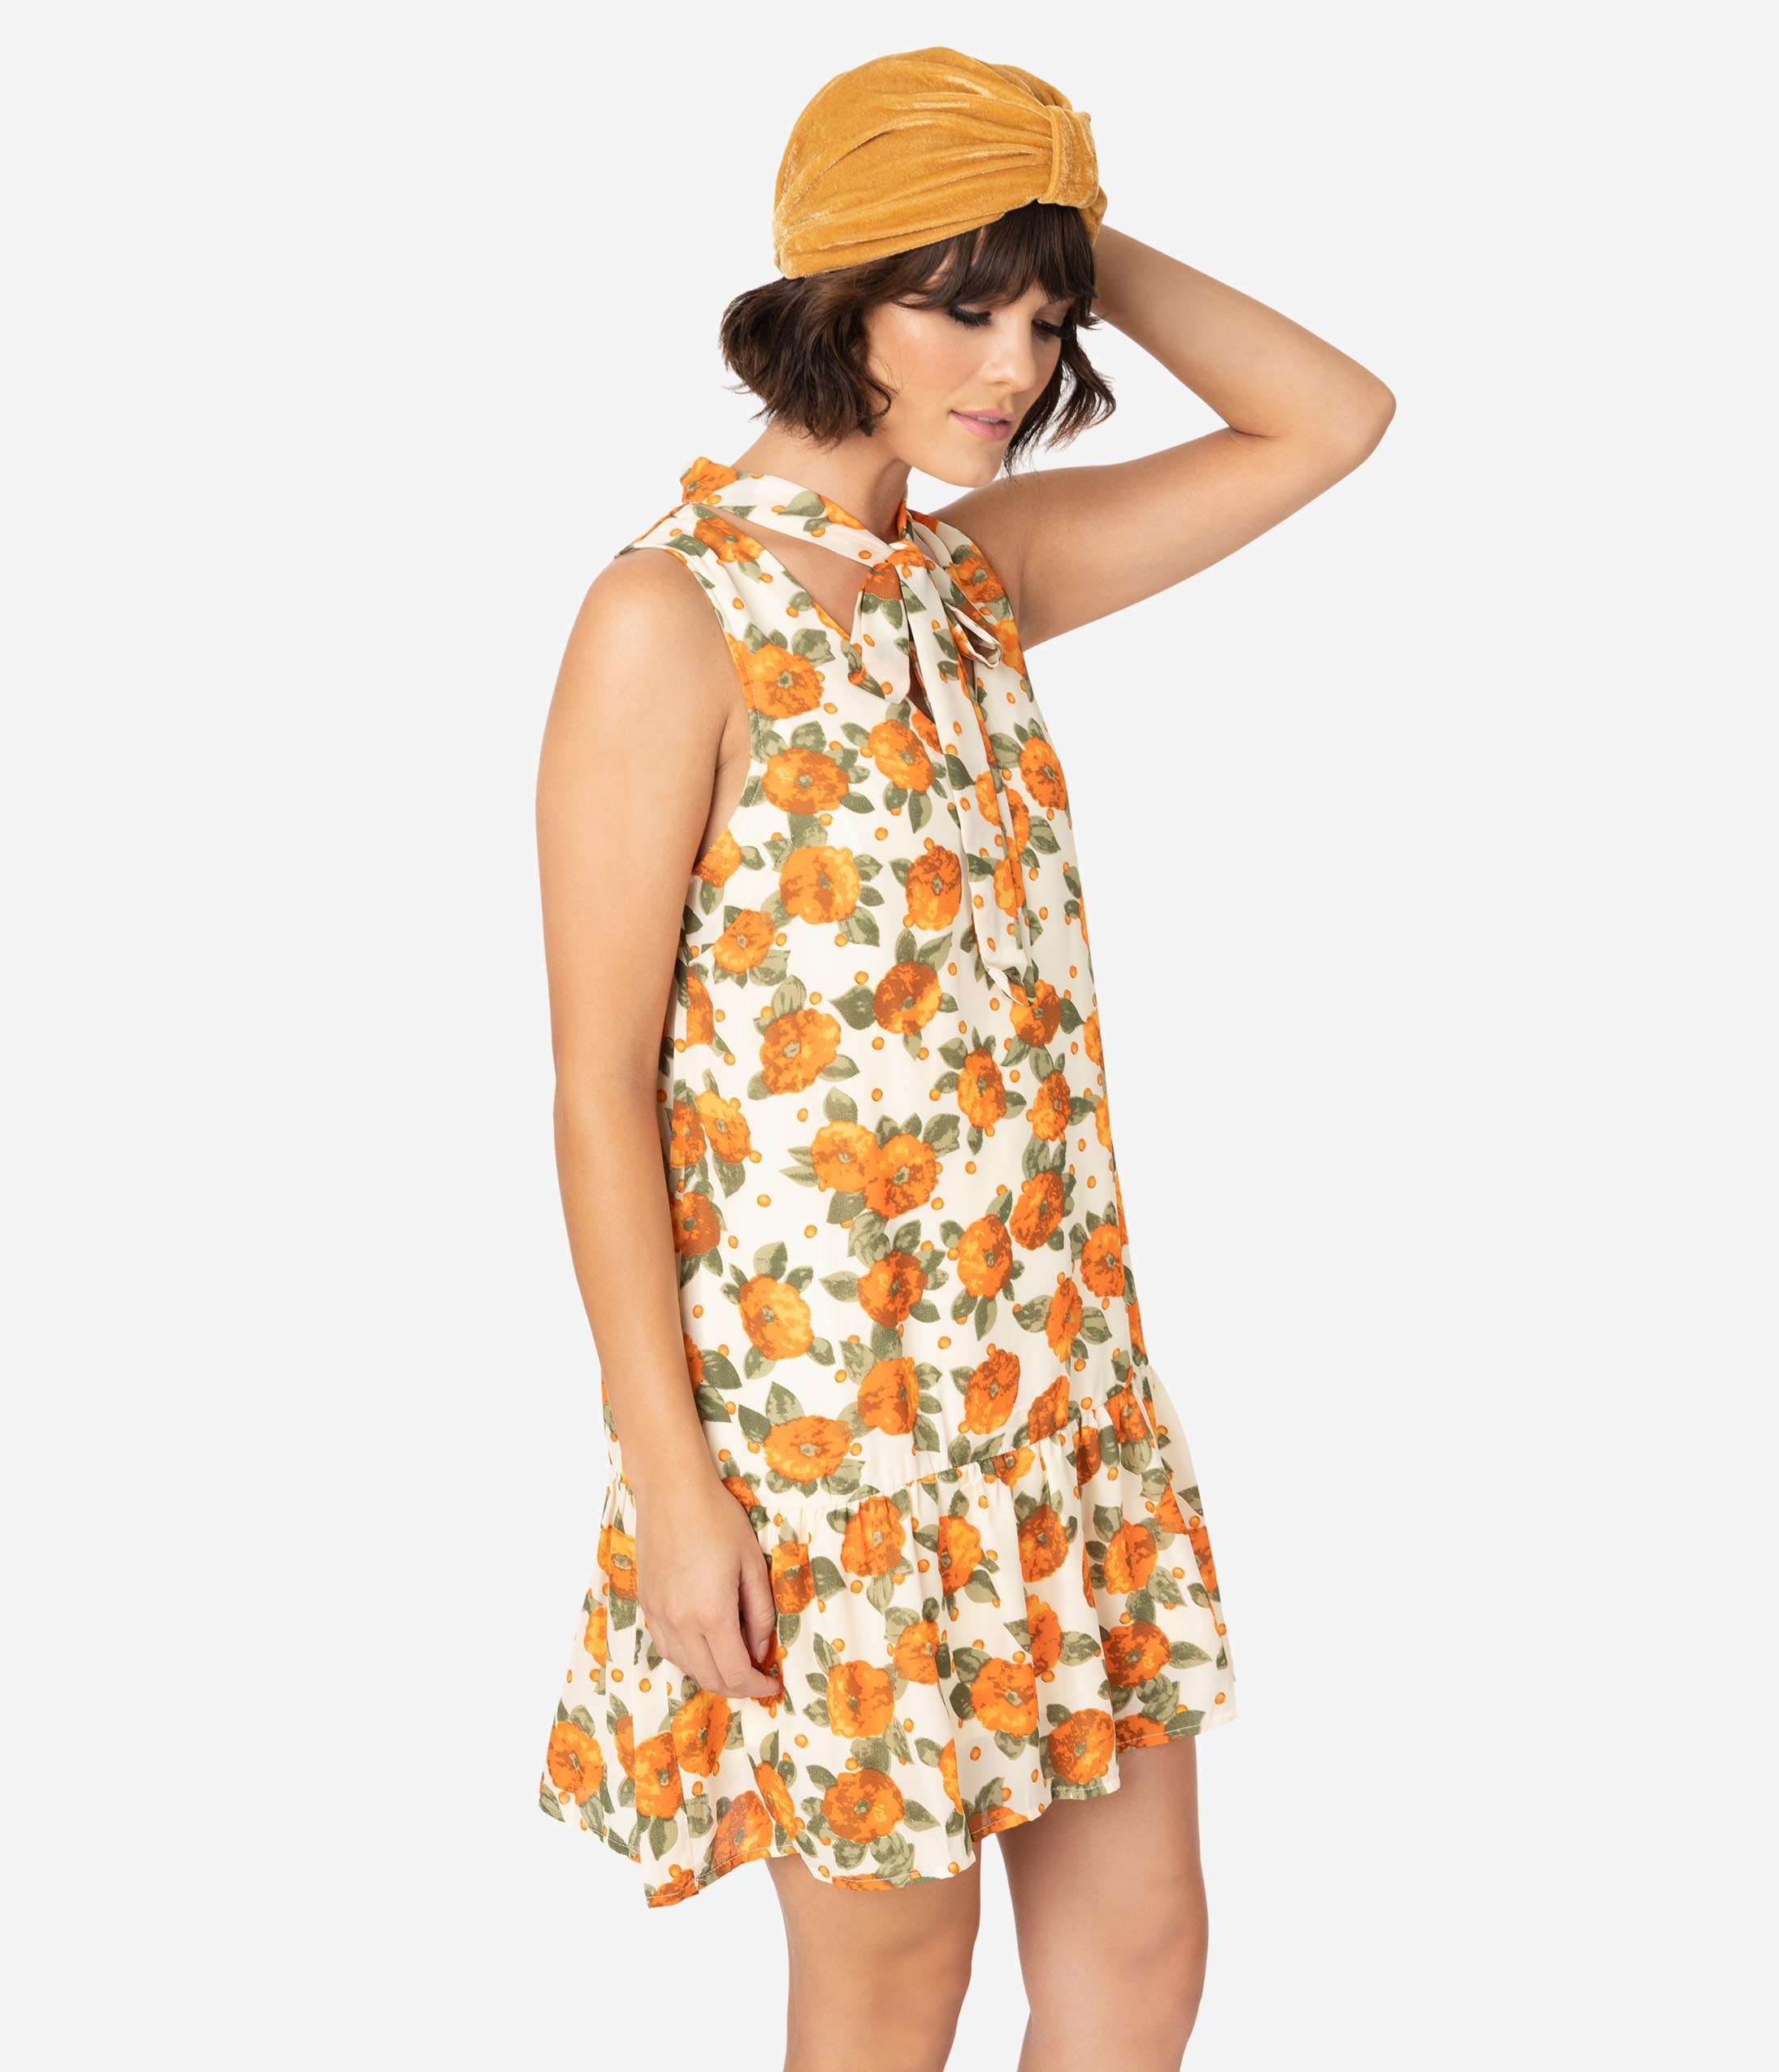 60s Mod Clothing Outfit Ideas Cream  Orange Floral Print Drop Waist Dress $52.00 AT vintagedancer.com